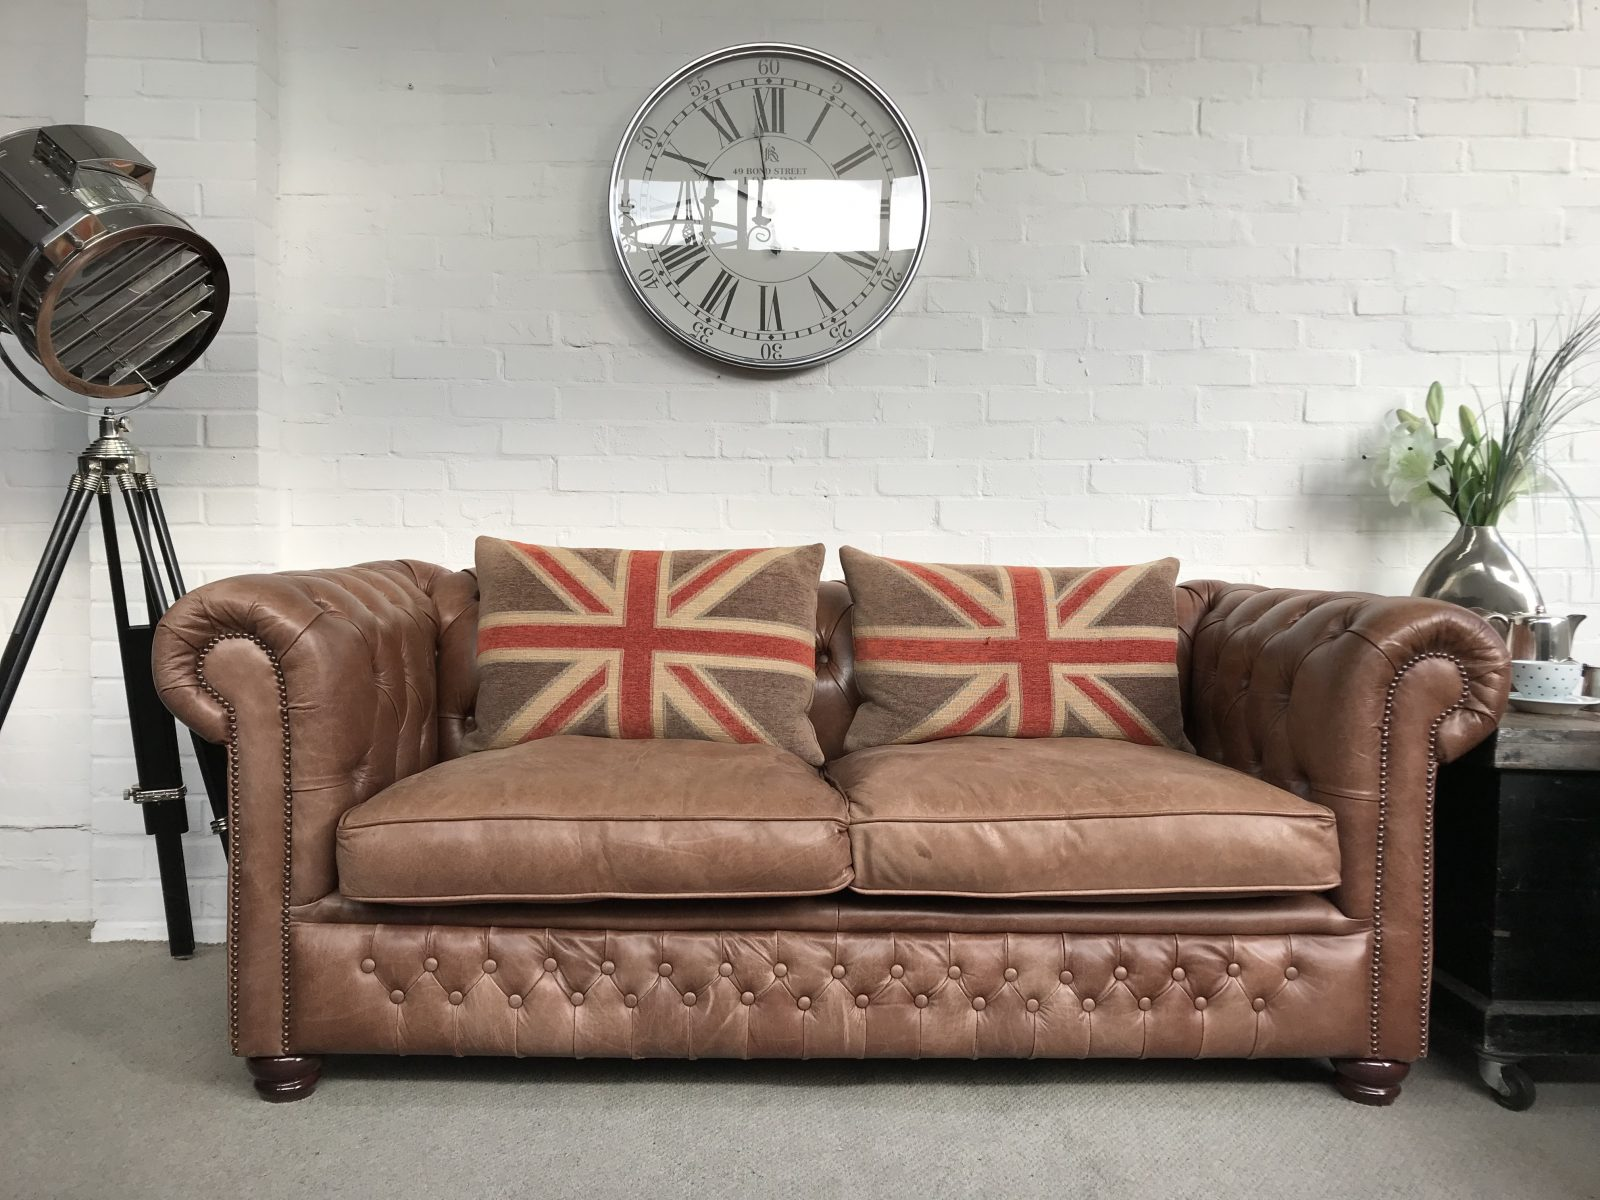 Tan 3 Seater Chesterfield Sofa.